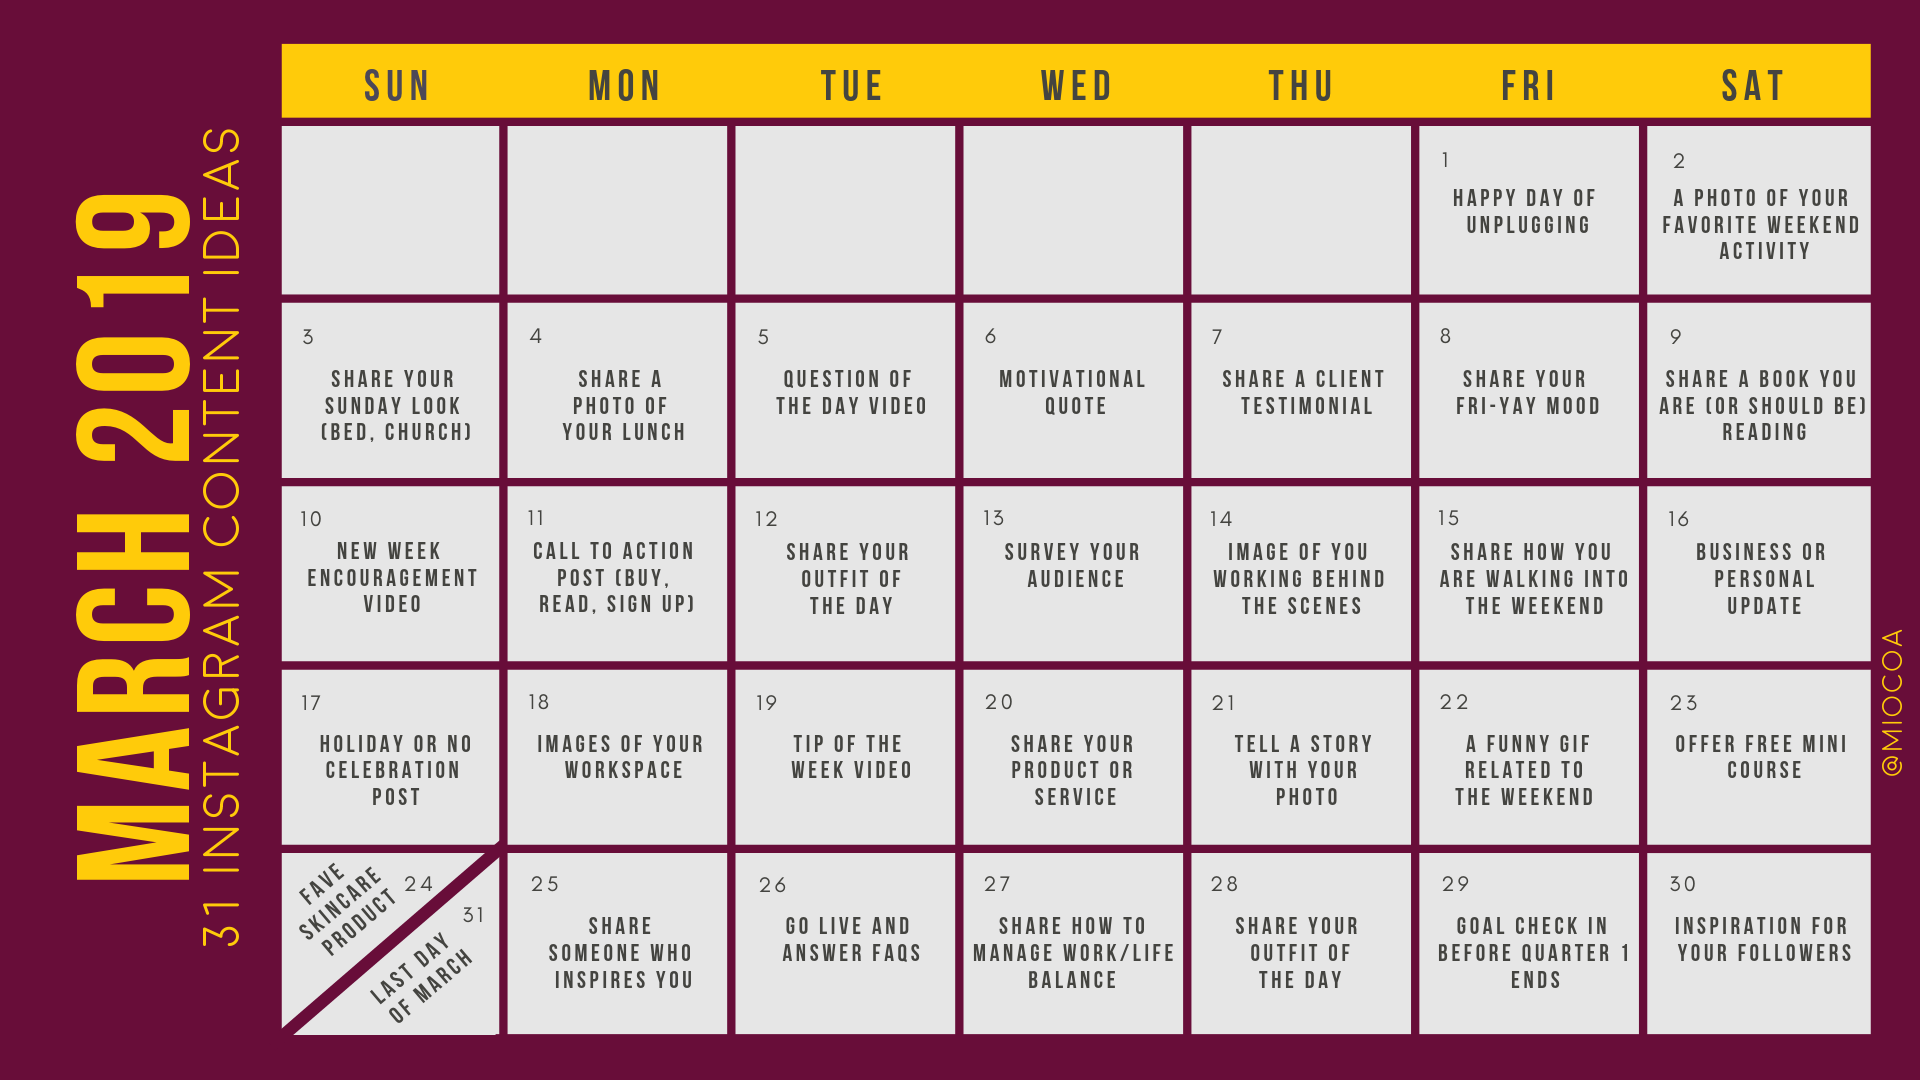 To download the pre-filled content calendar here, just click the image.